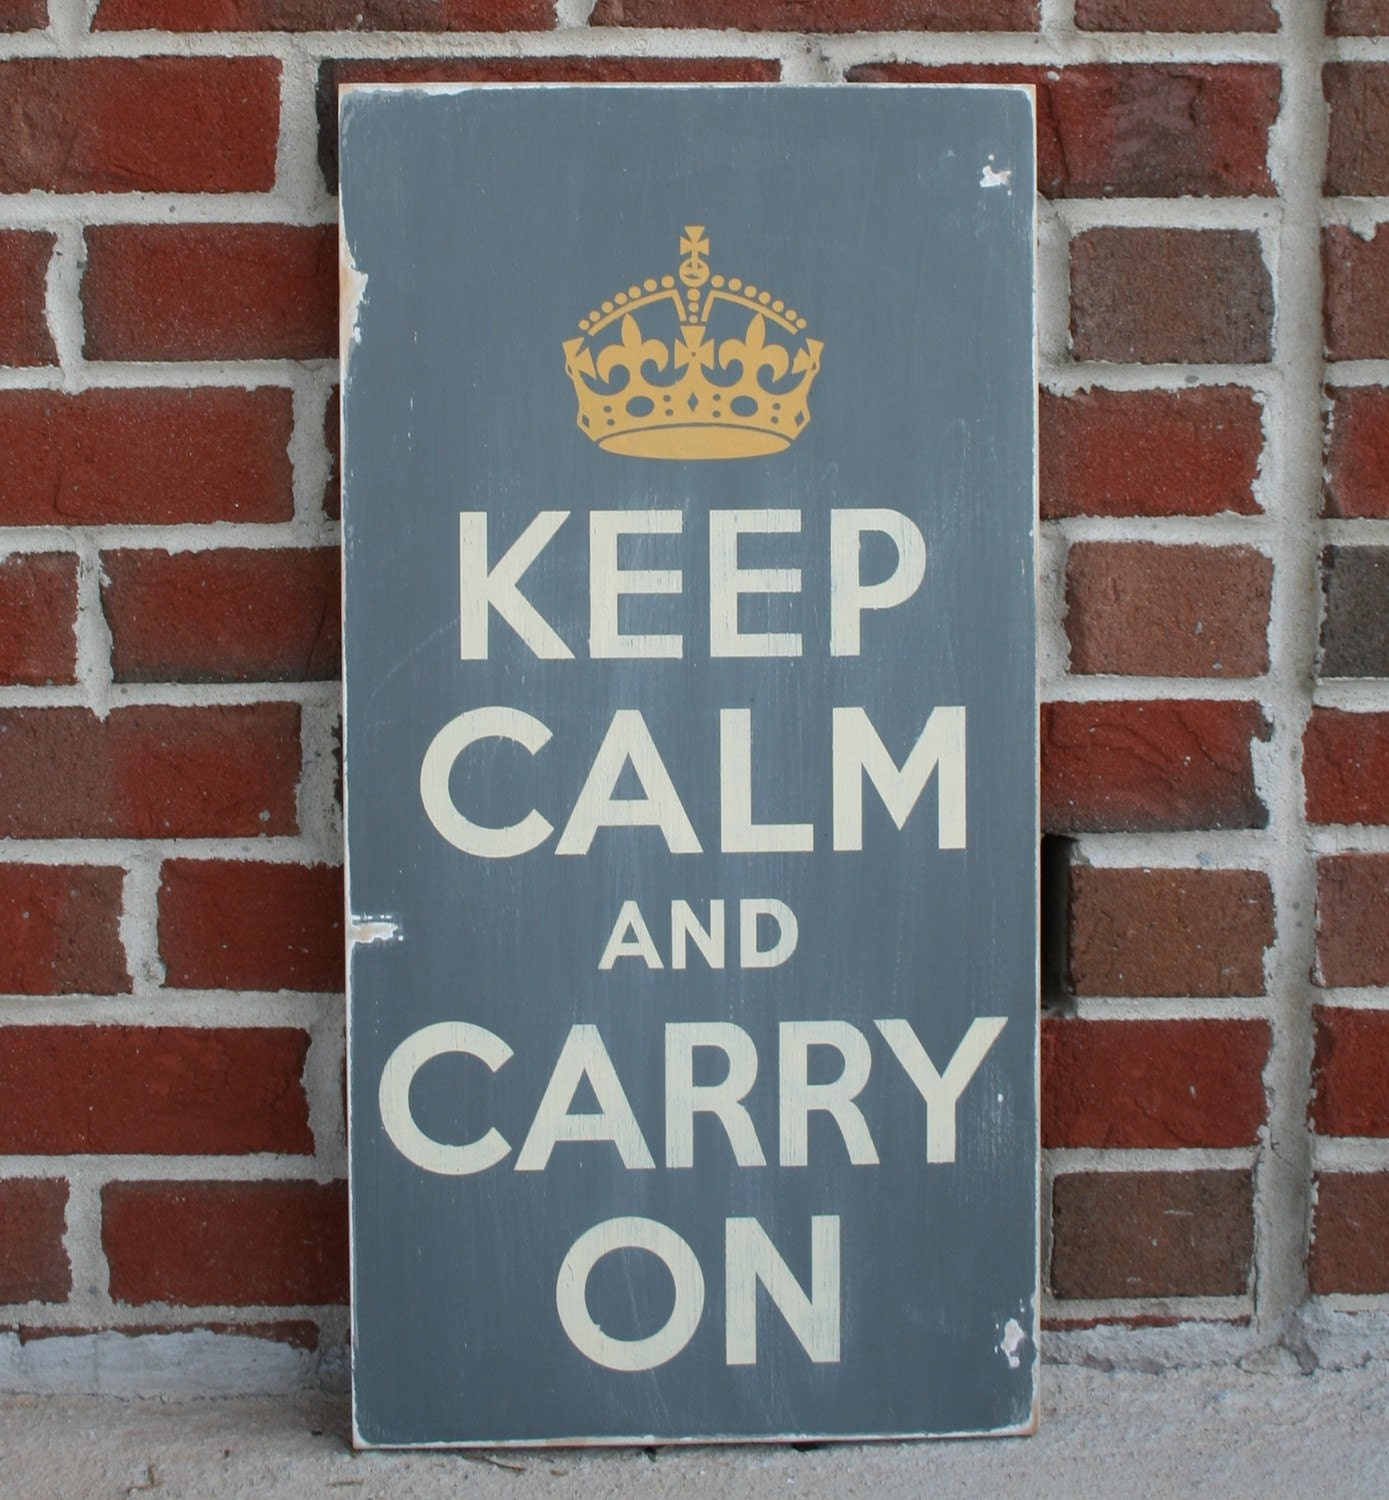 Keep Calm and Carry On - Large Distressed Sign in Charcoal Gray with Cream and Golden Straw Yellow